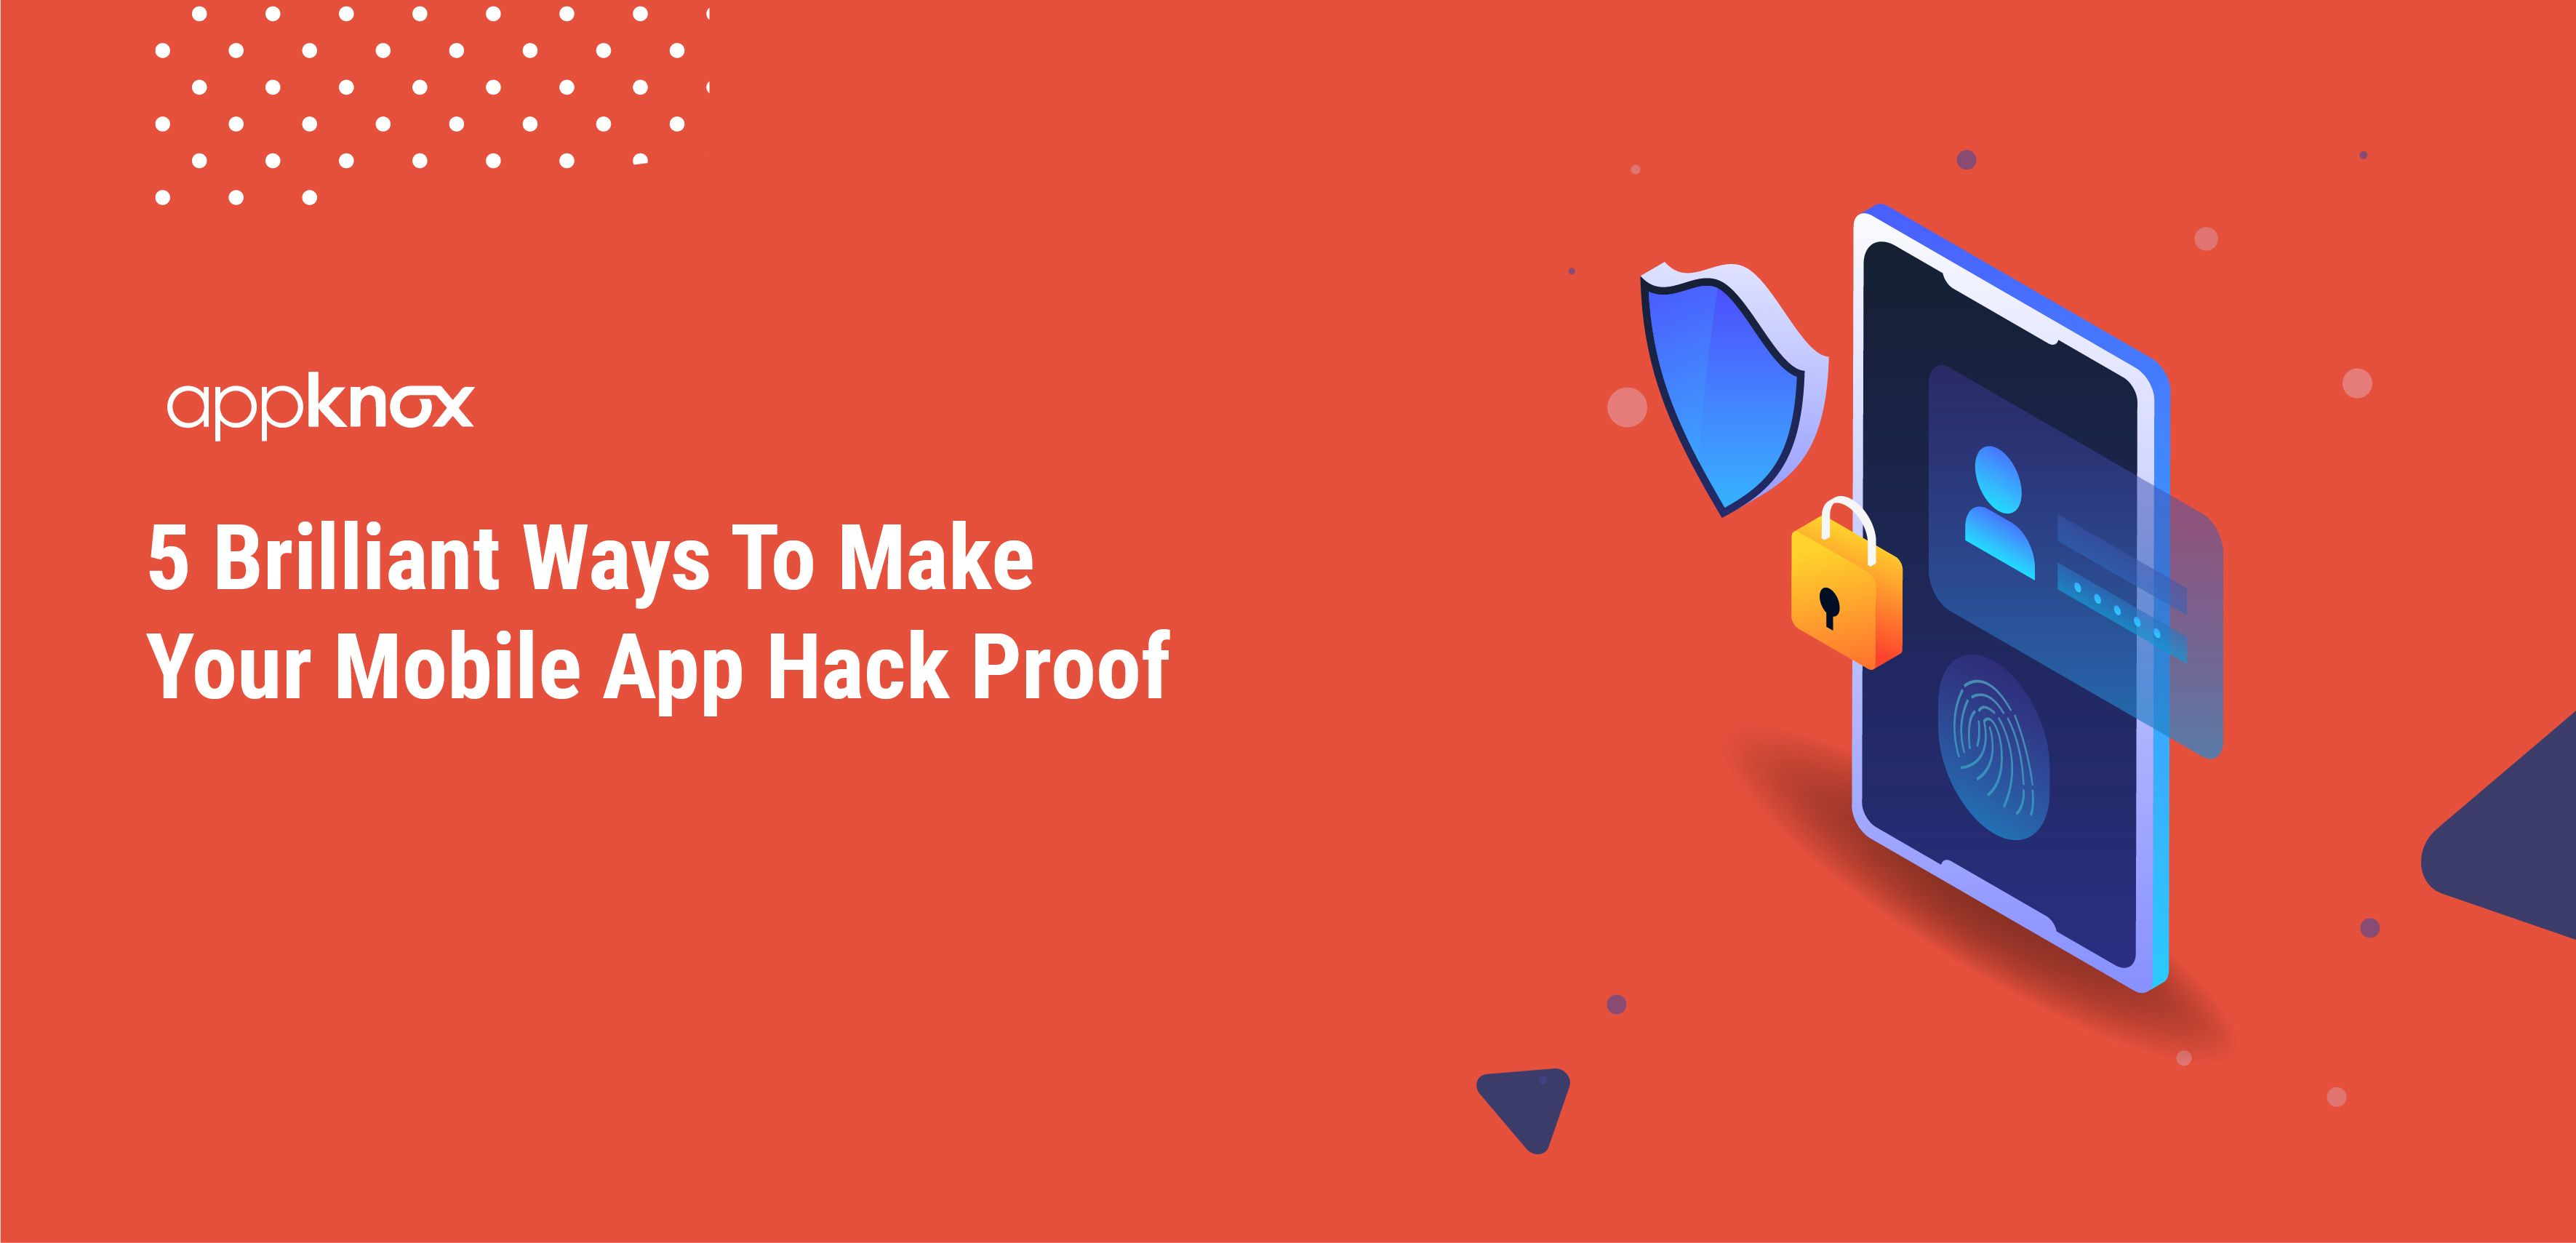 5 Brilliant Ways To Make Your Mobile App Hack Proof